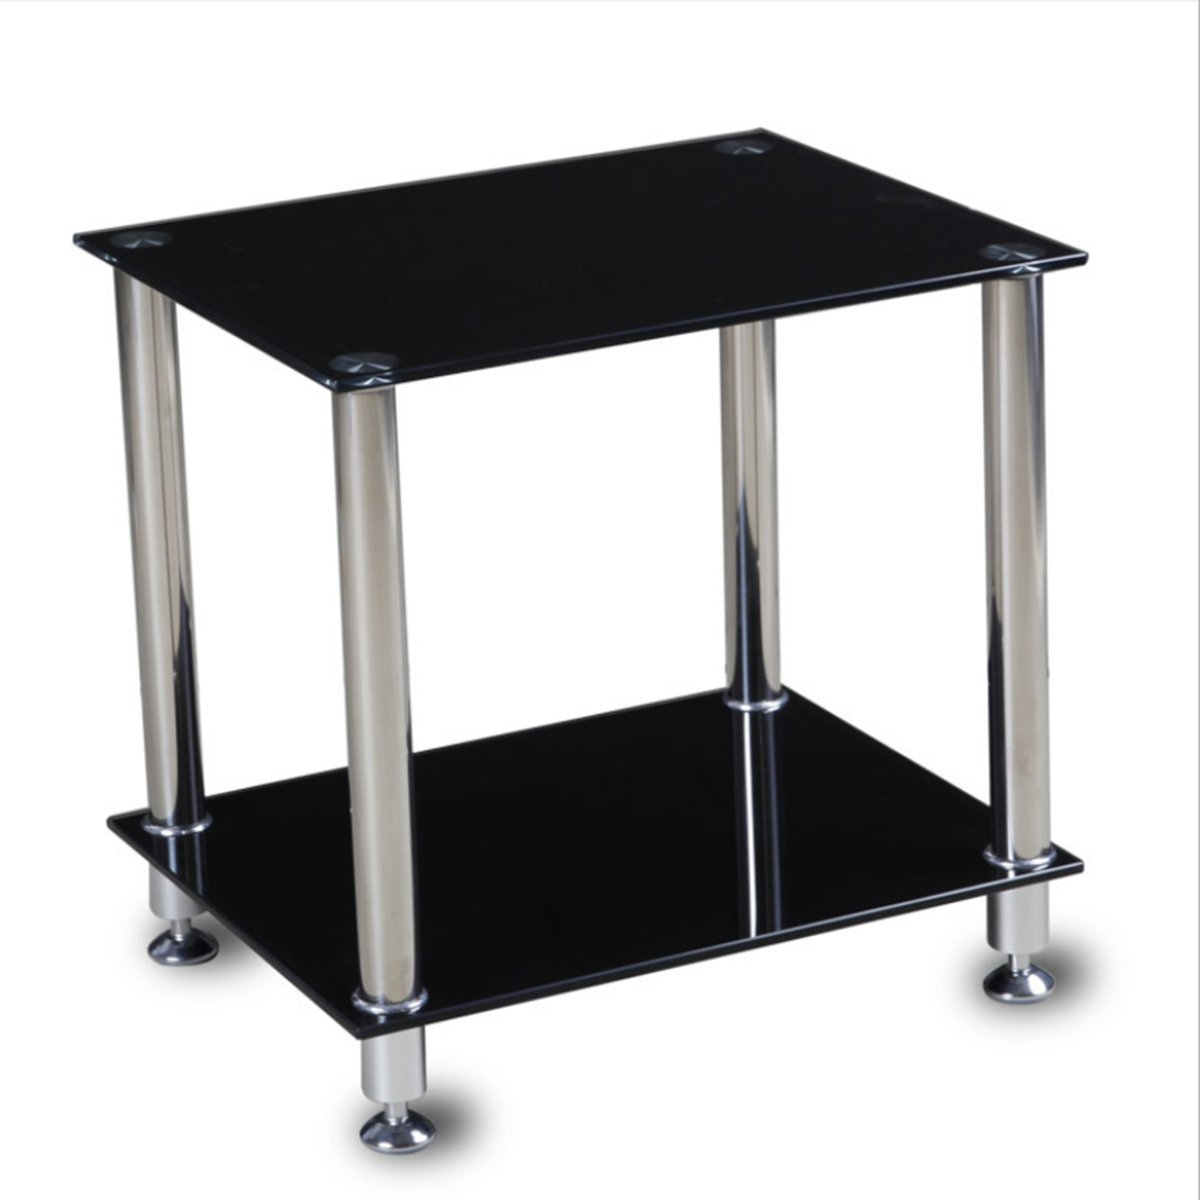 2-Tier Black Glass Coffee Table Square End Table Sofa Table Stainless Steel Legs with Storage Shelf, 50x40x48cm GOTOTOP